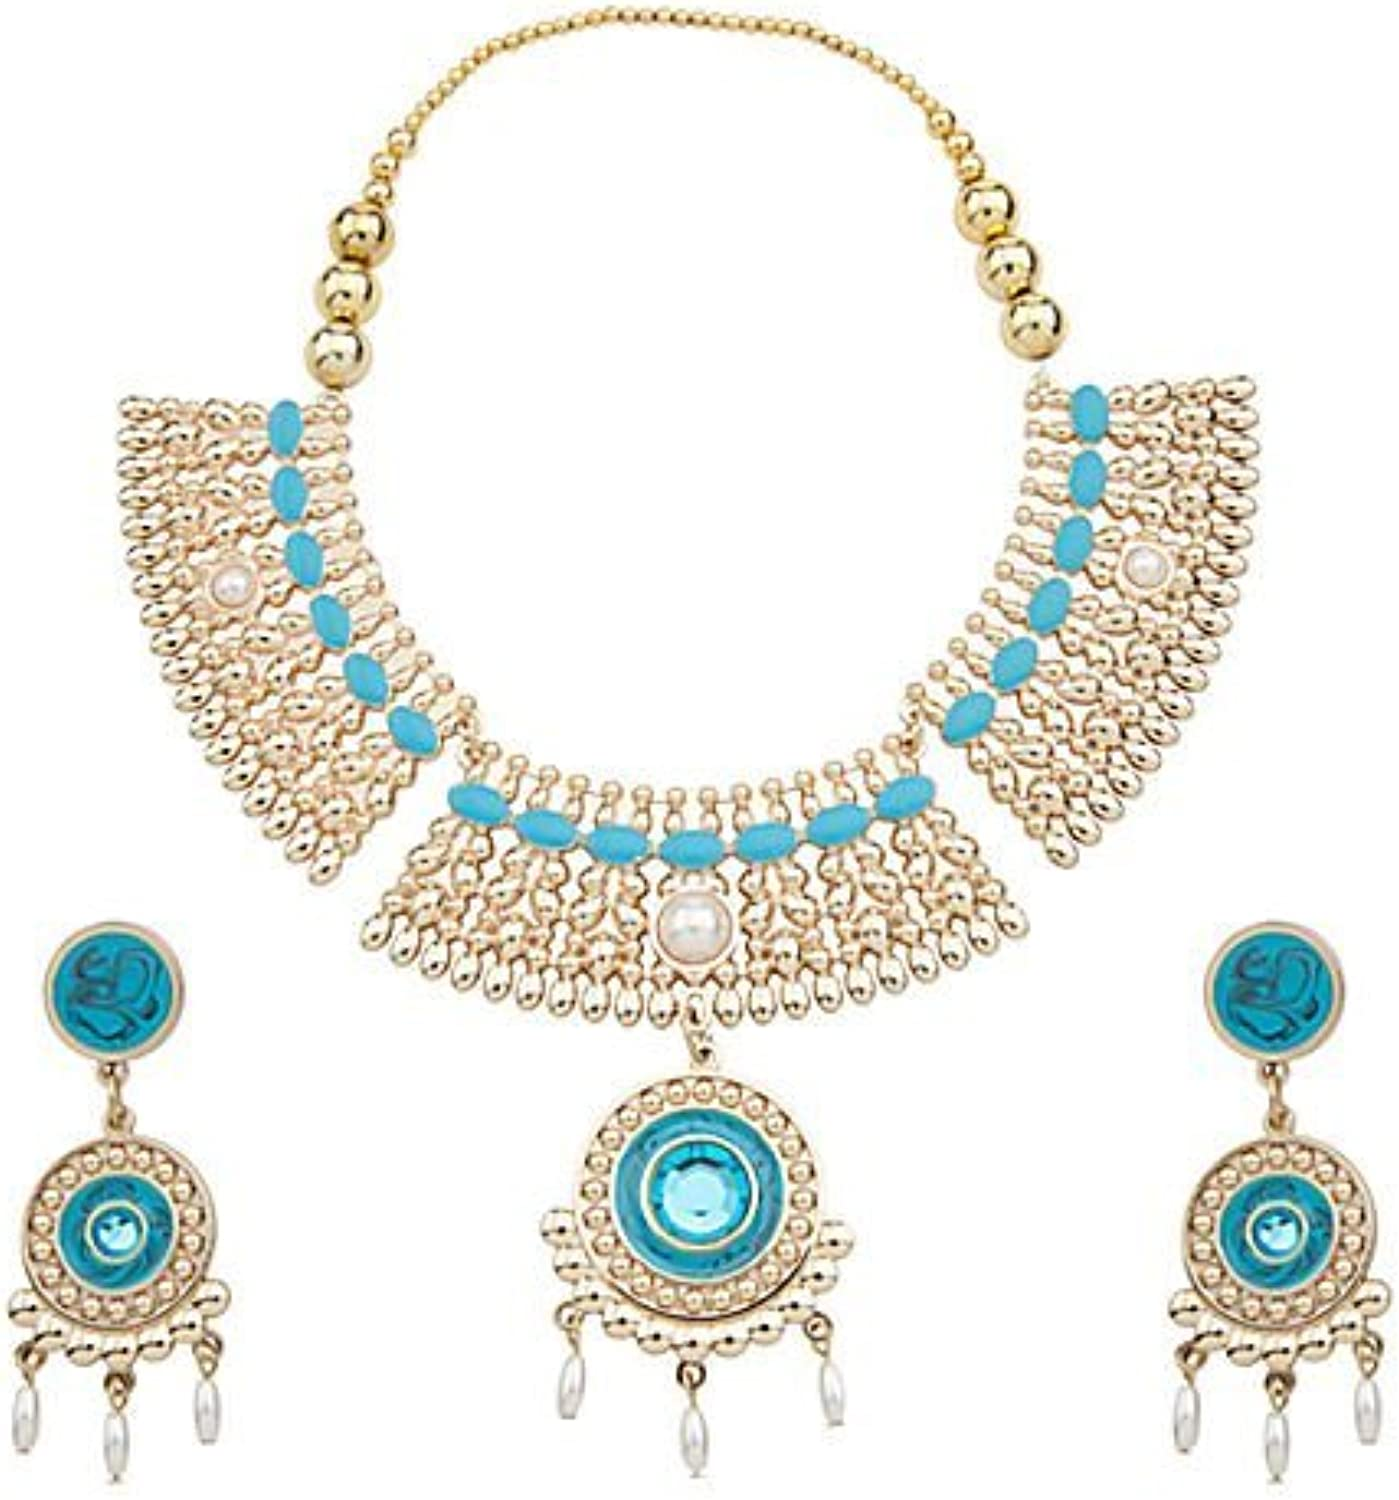 Disney Store Princess Pocahontas Necklace and Earing Set Costume 2012 by Disney Interactive Studios